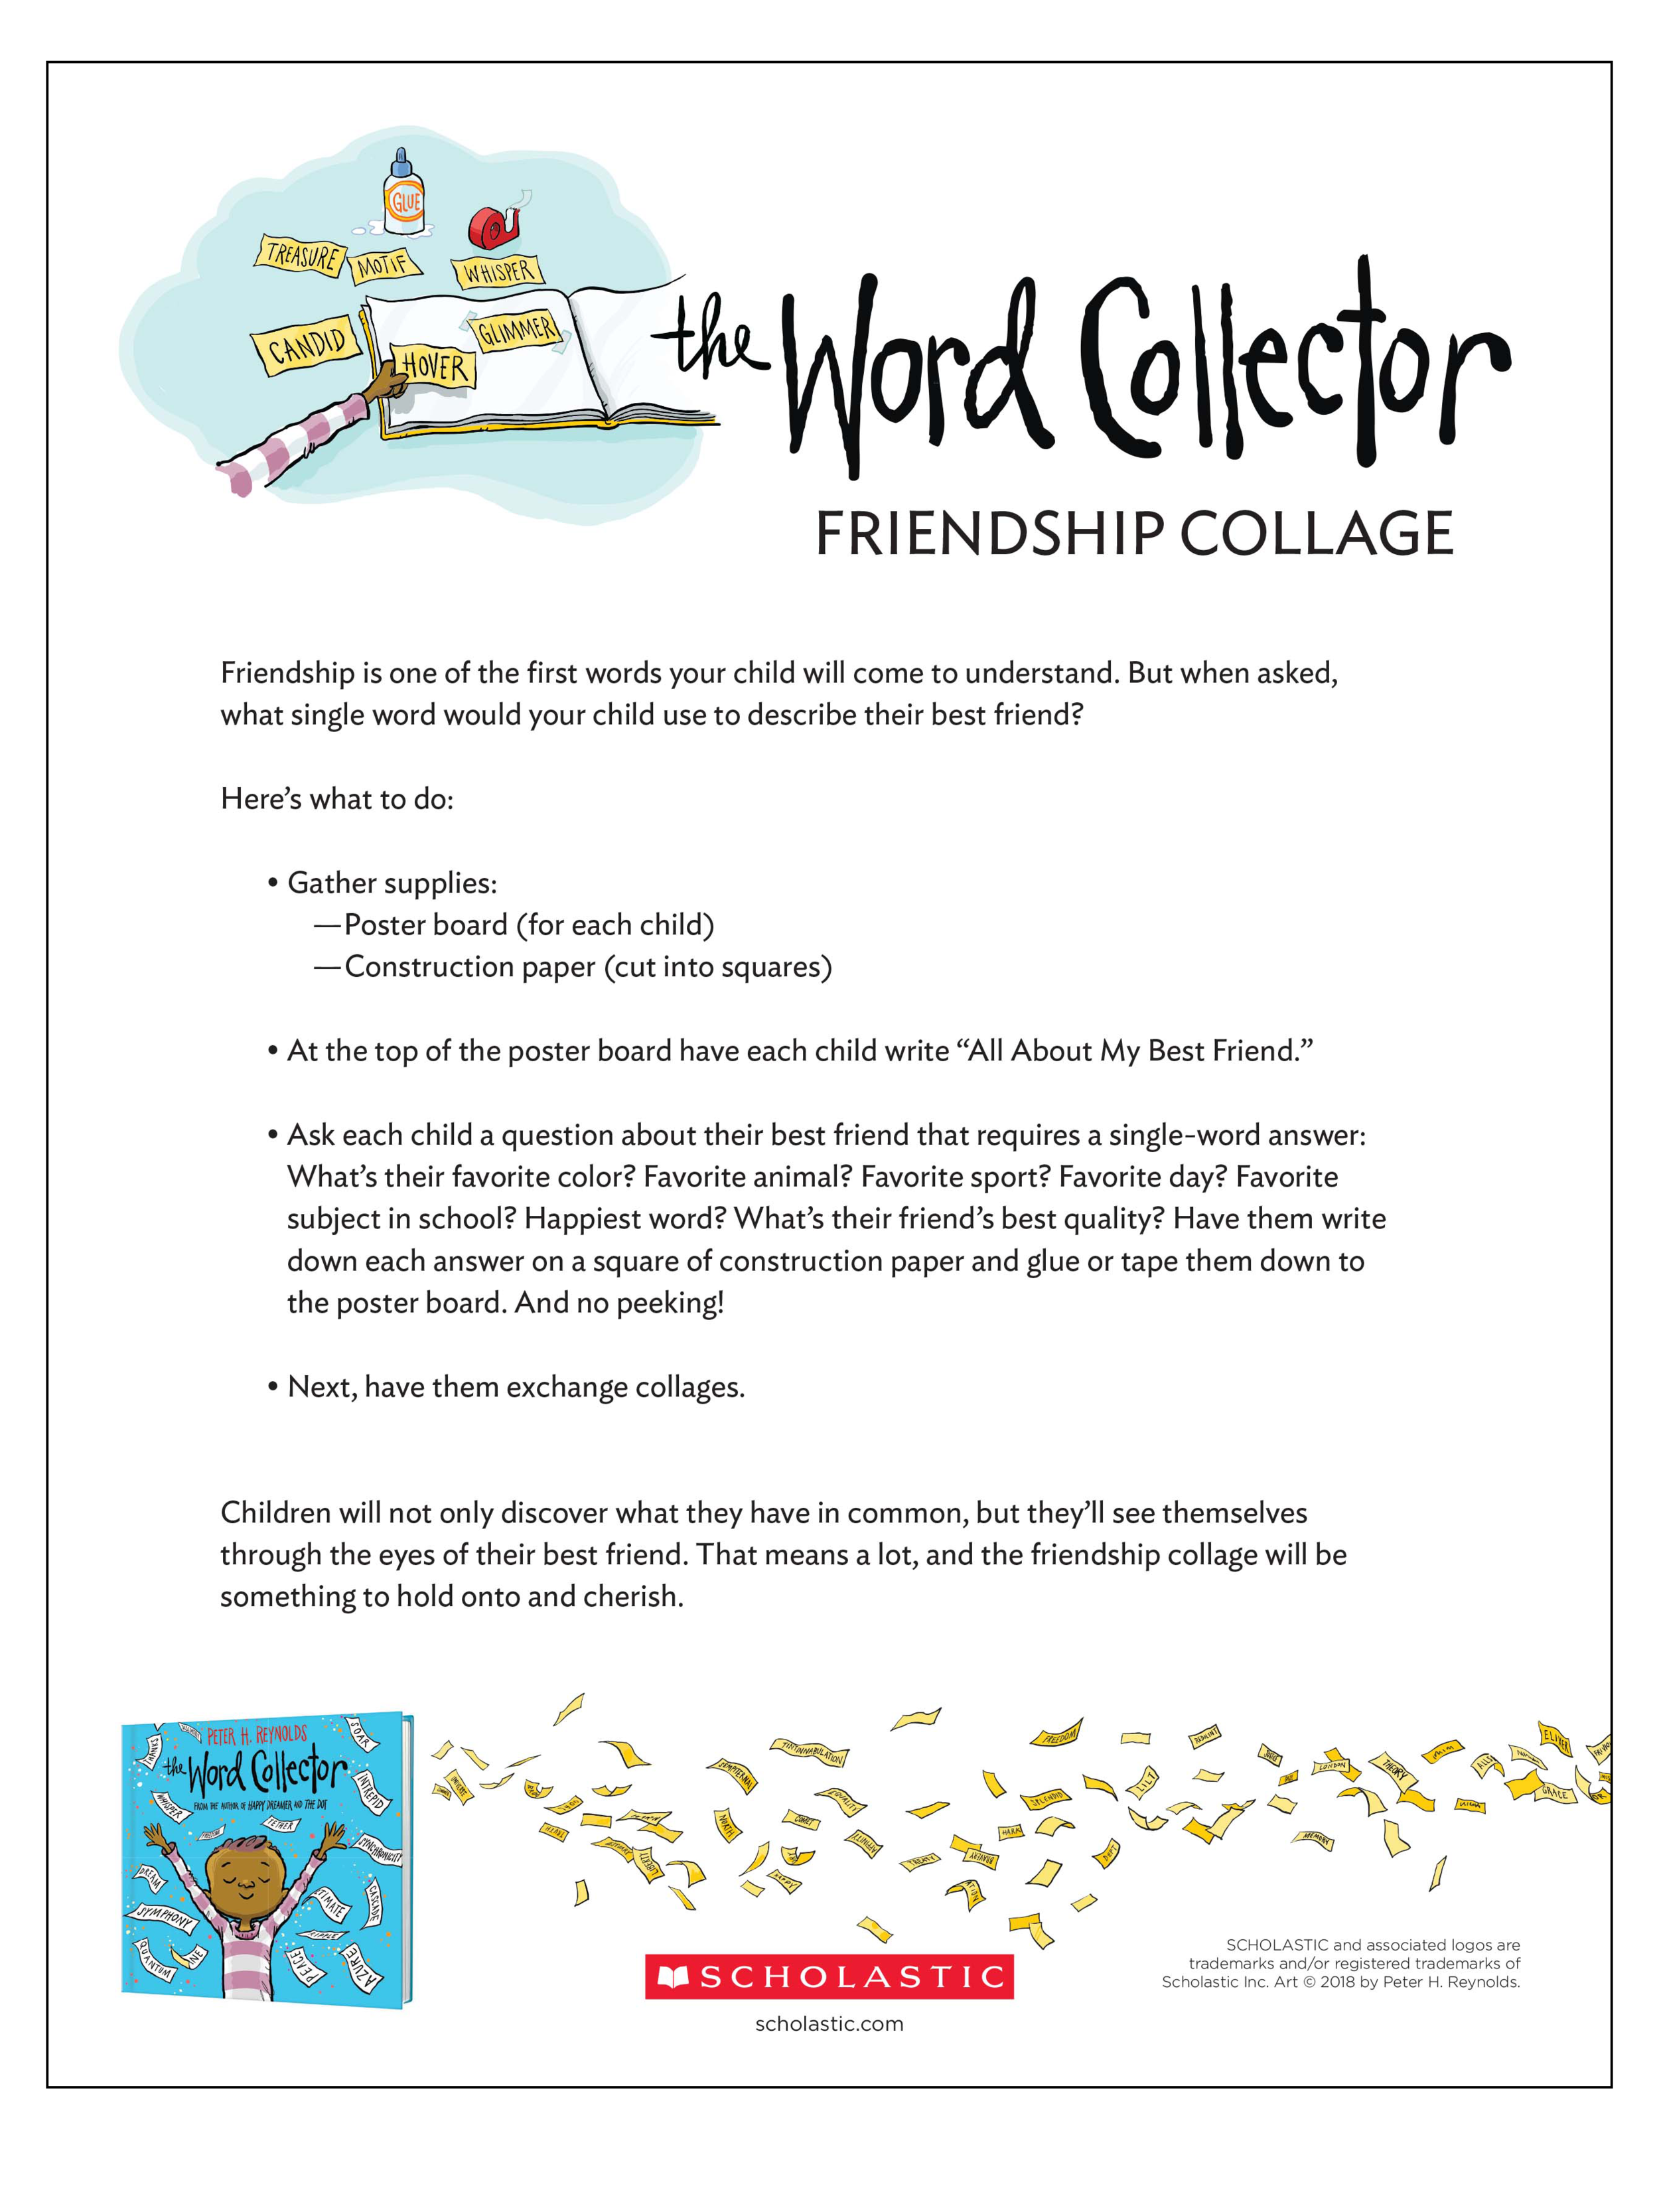 Scholastic_WordCollector_FriendshipCollage.png